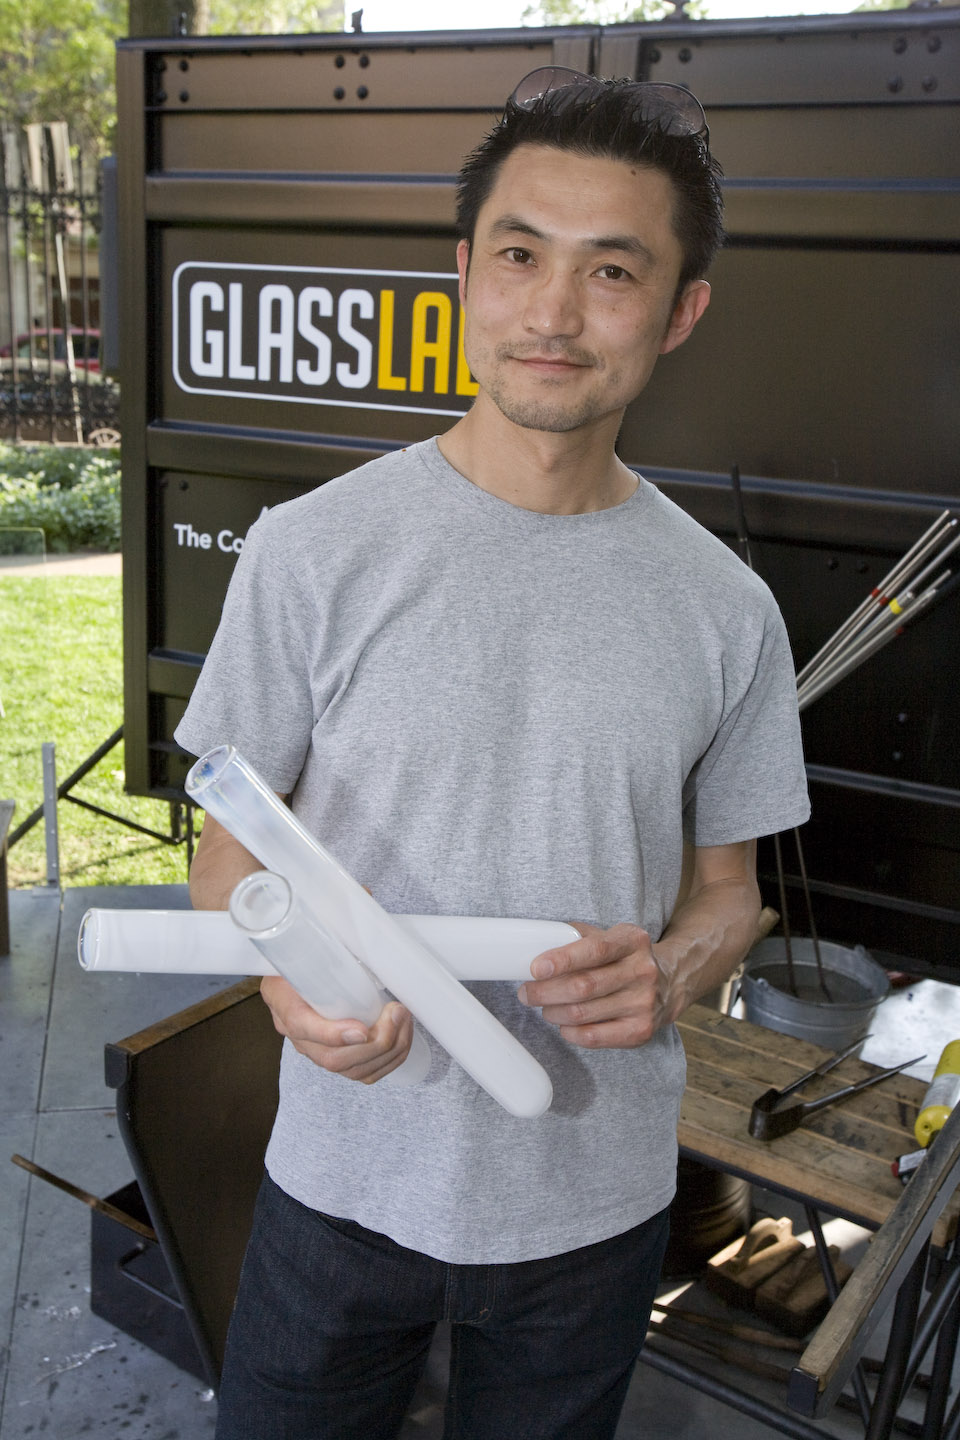 Masamichi Udagawa of Antenna Design GlassLab design program